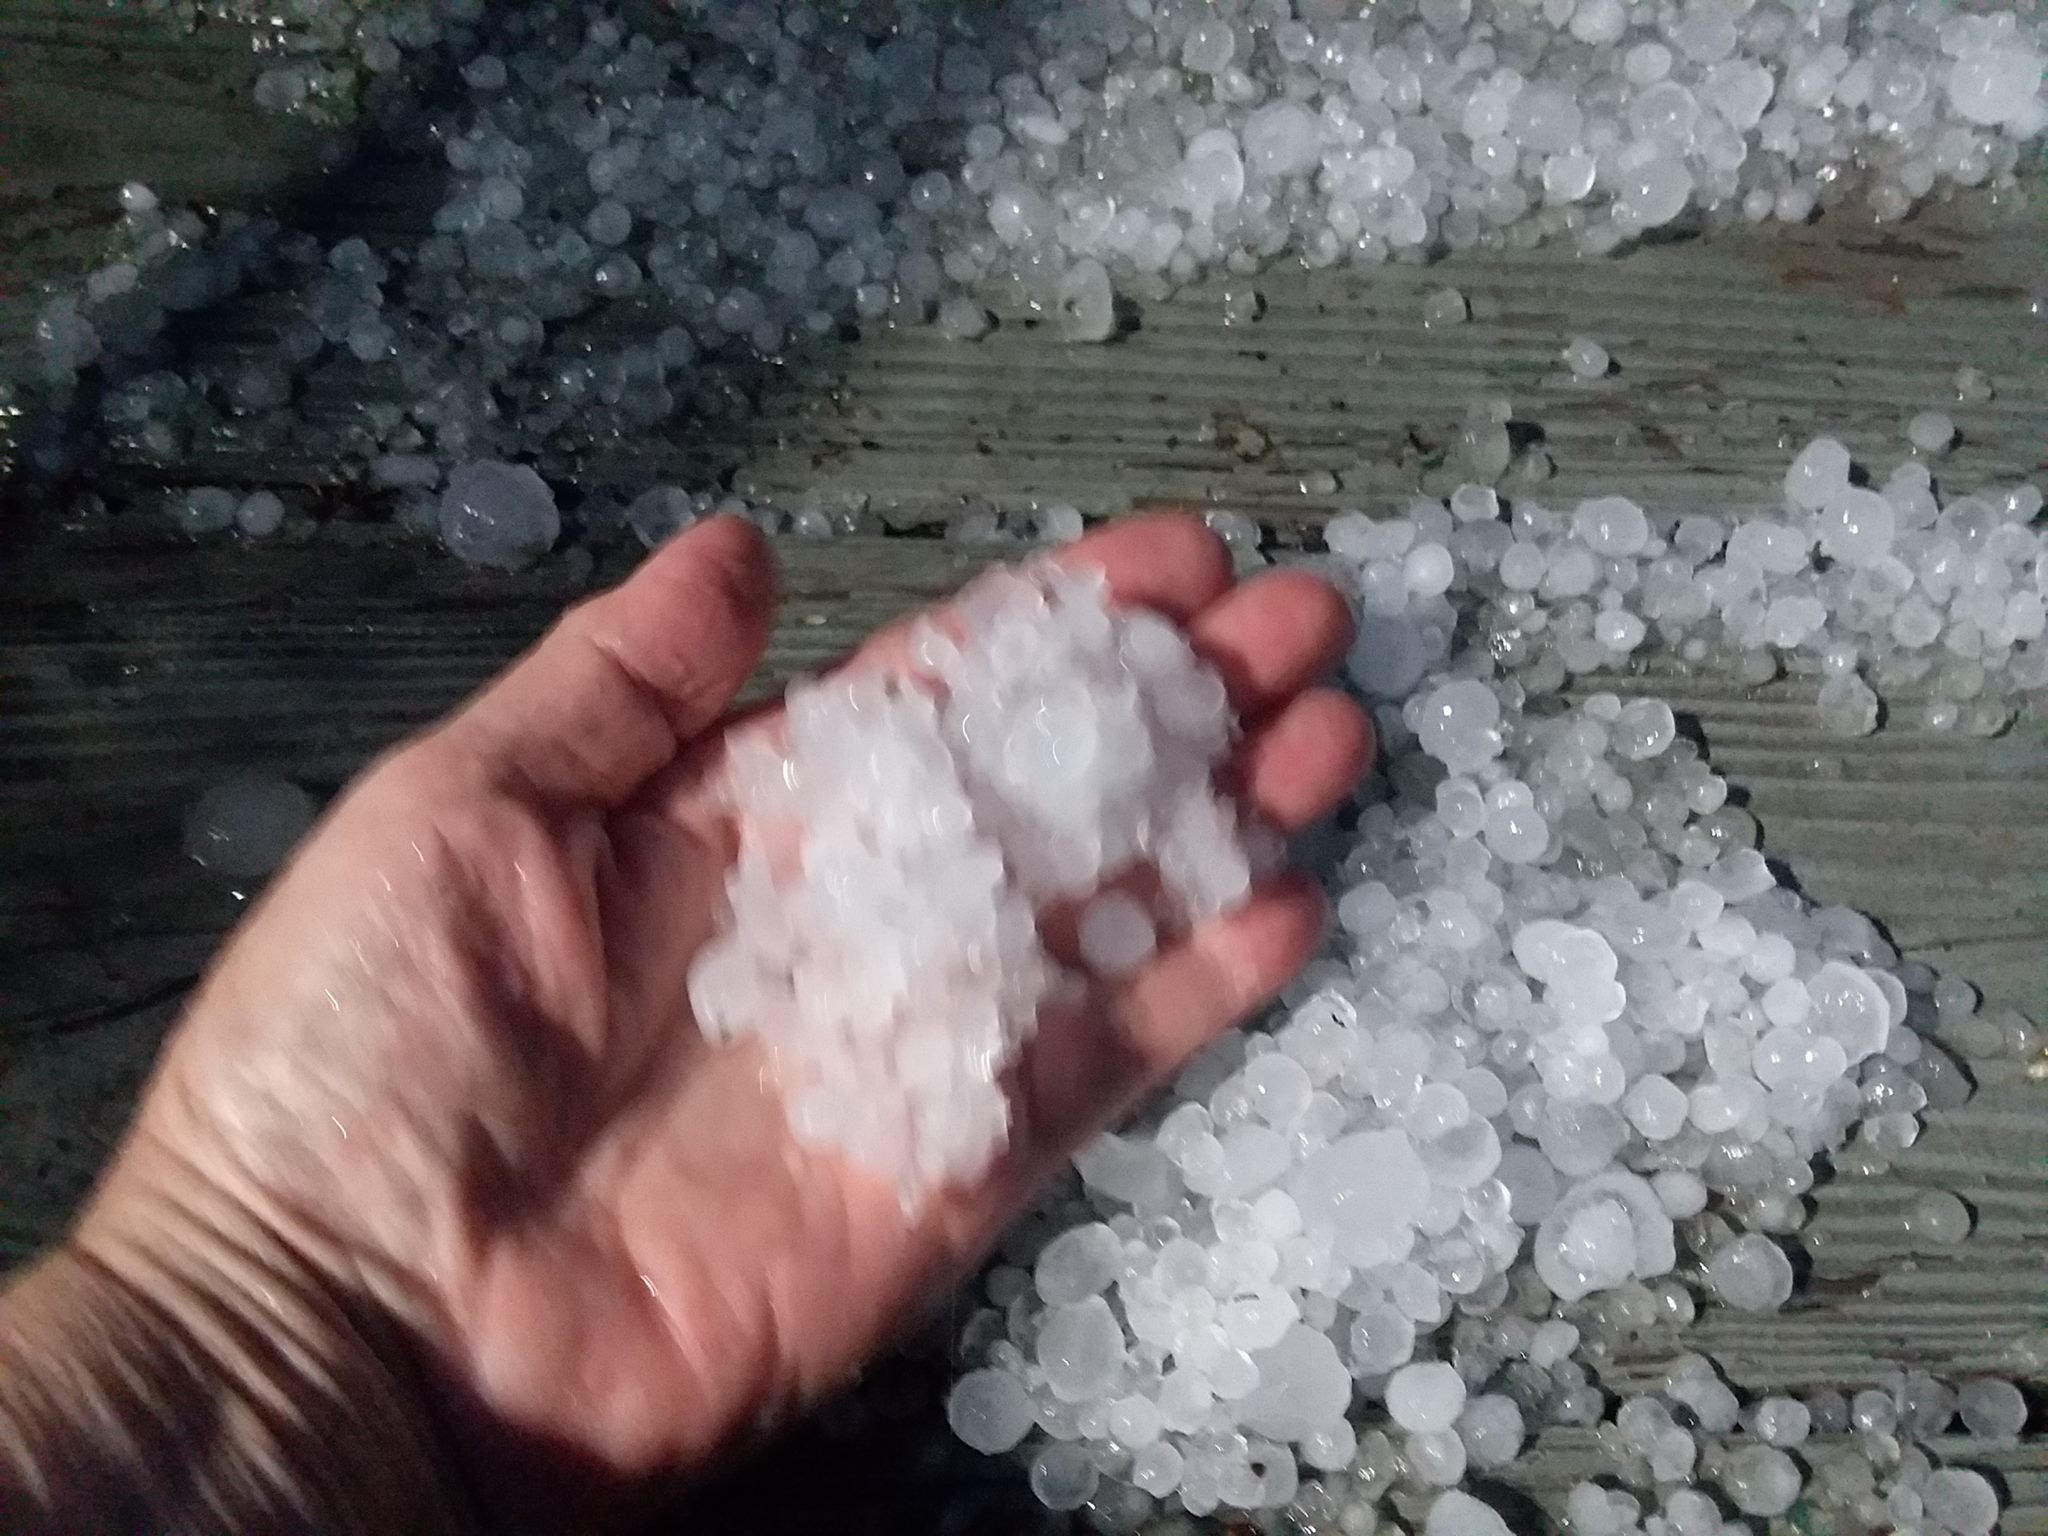 Hail in Greenville, WV. Photo Credit: Penny Brooks